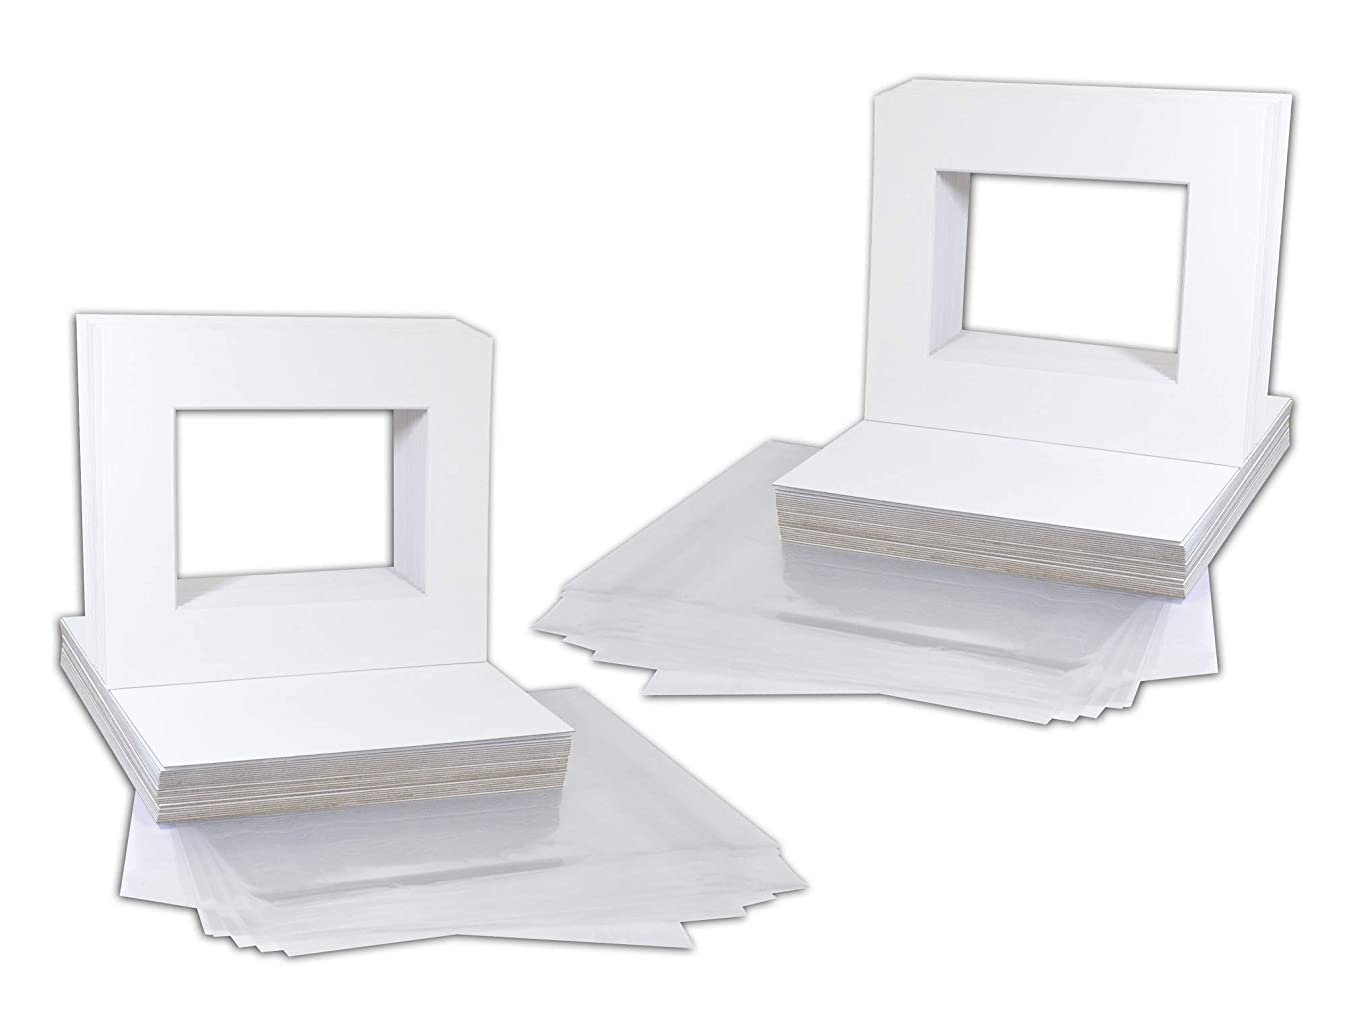 Golden State Art Pack of 50 8x10 White Picture Mats Mattes with White Core Bevel Cut for 5x7 Photo + Backing + Bags